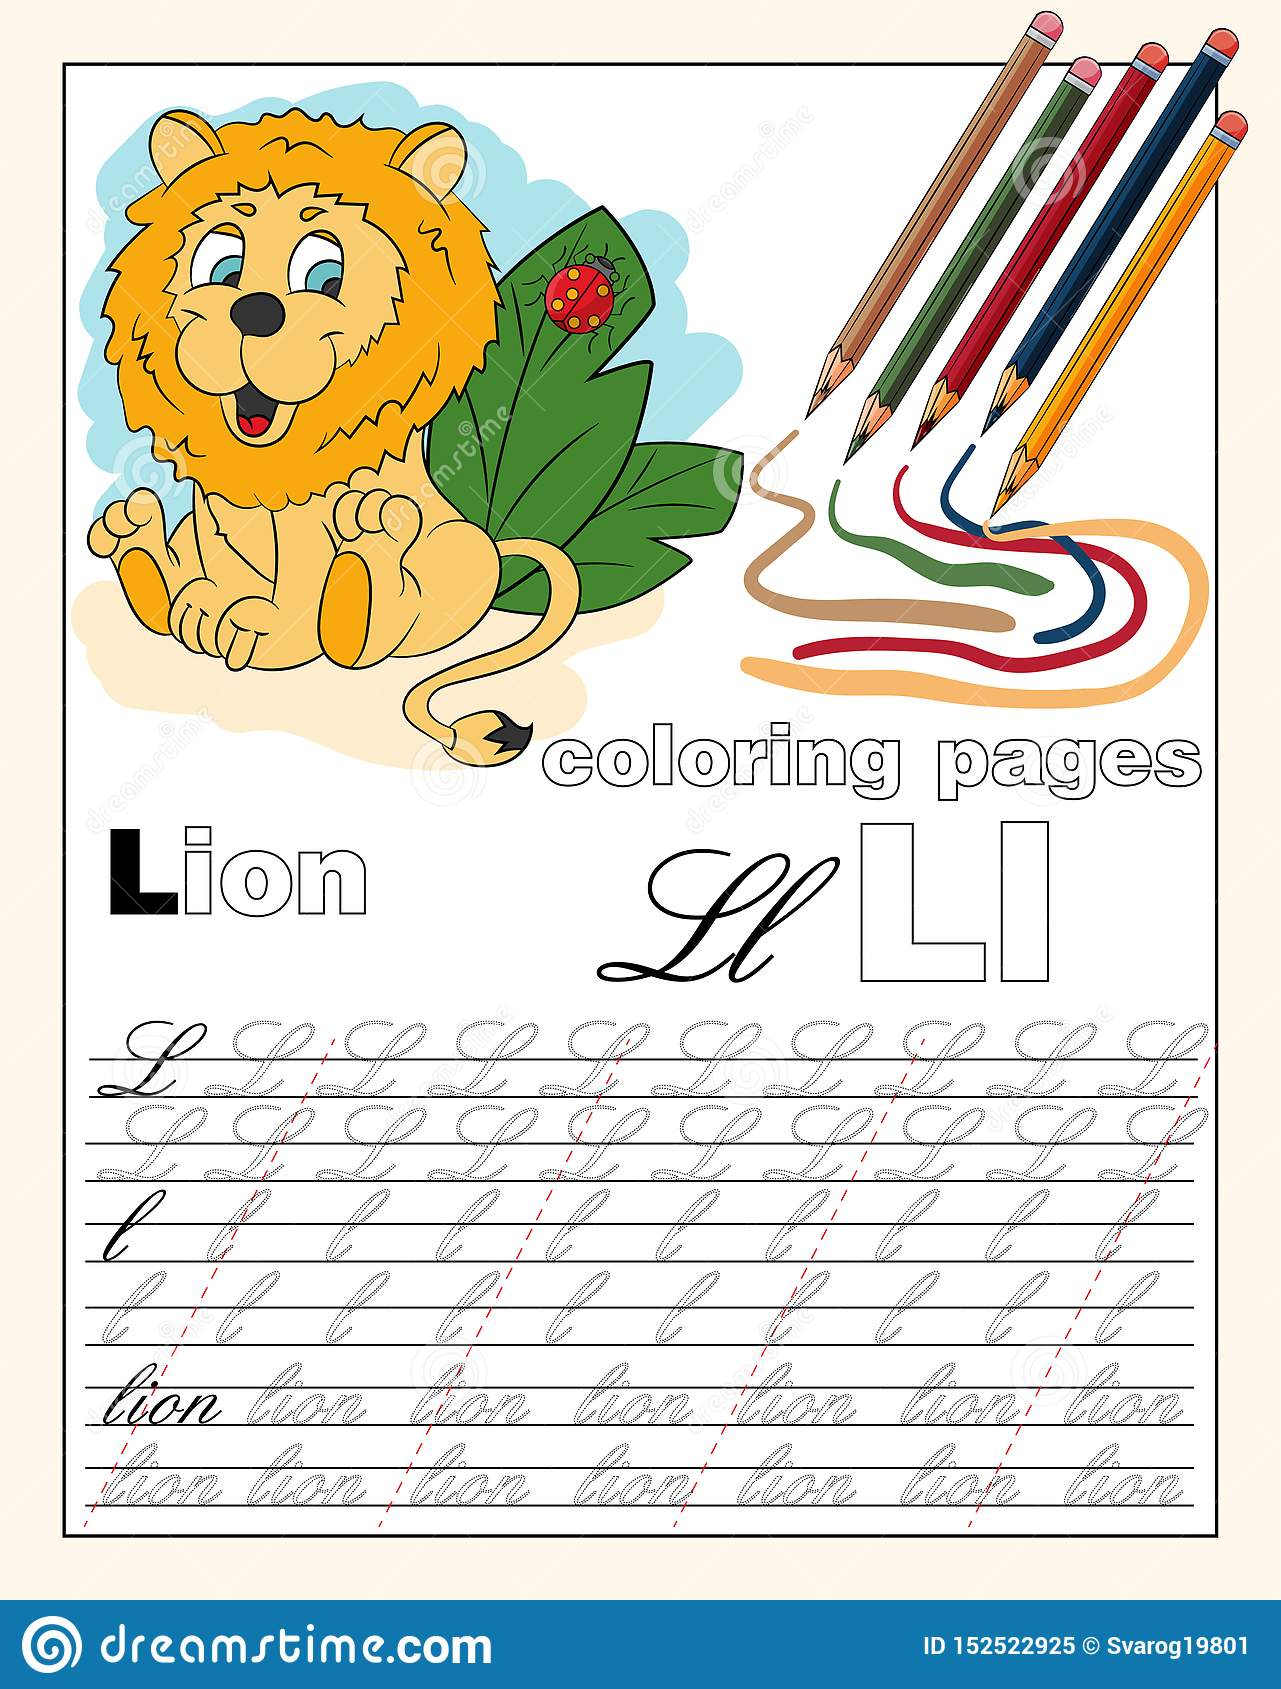 Color 12 Illustration Of The English Alphabet Page With